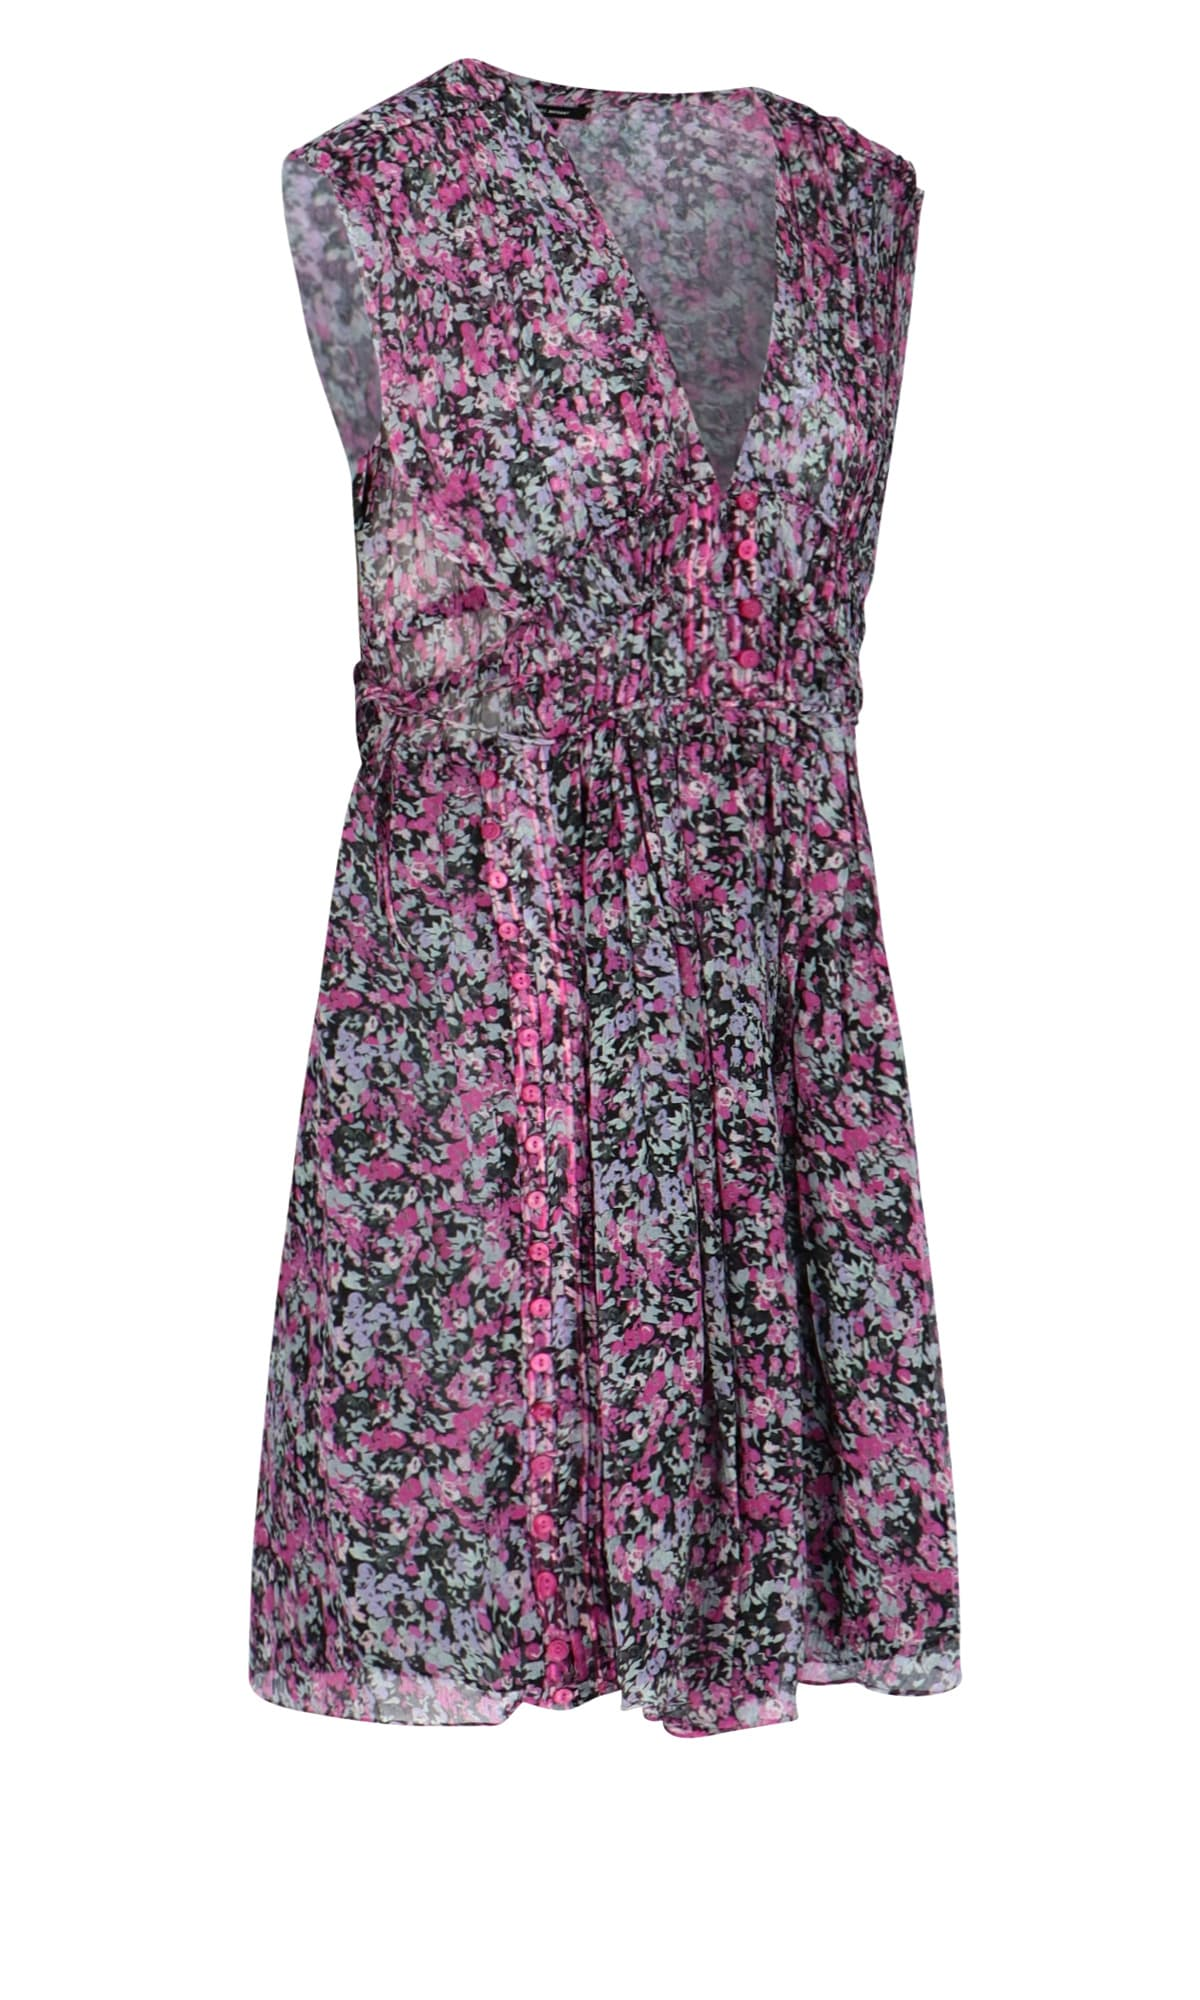 Isabel Marant Sleeveless Dress